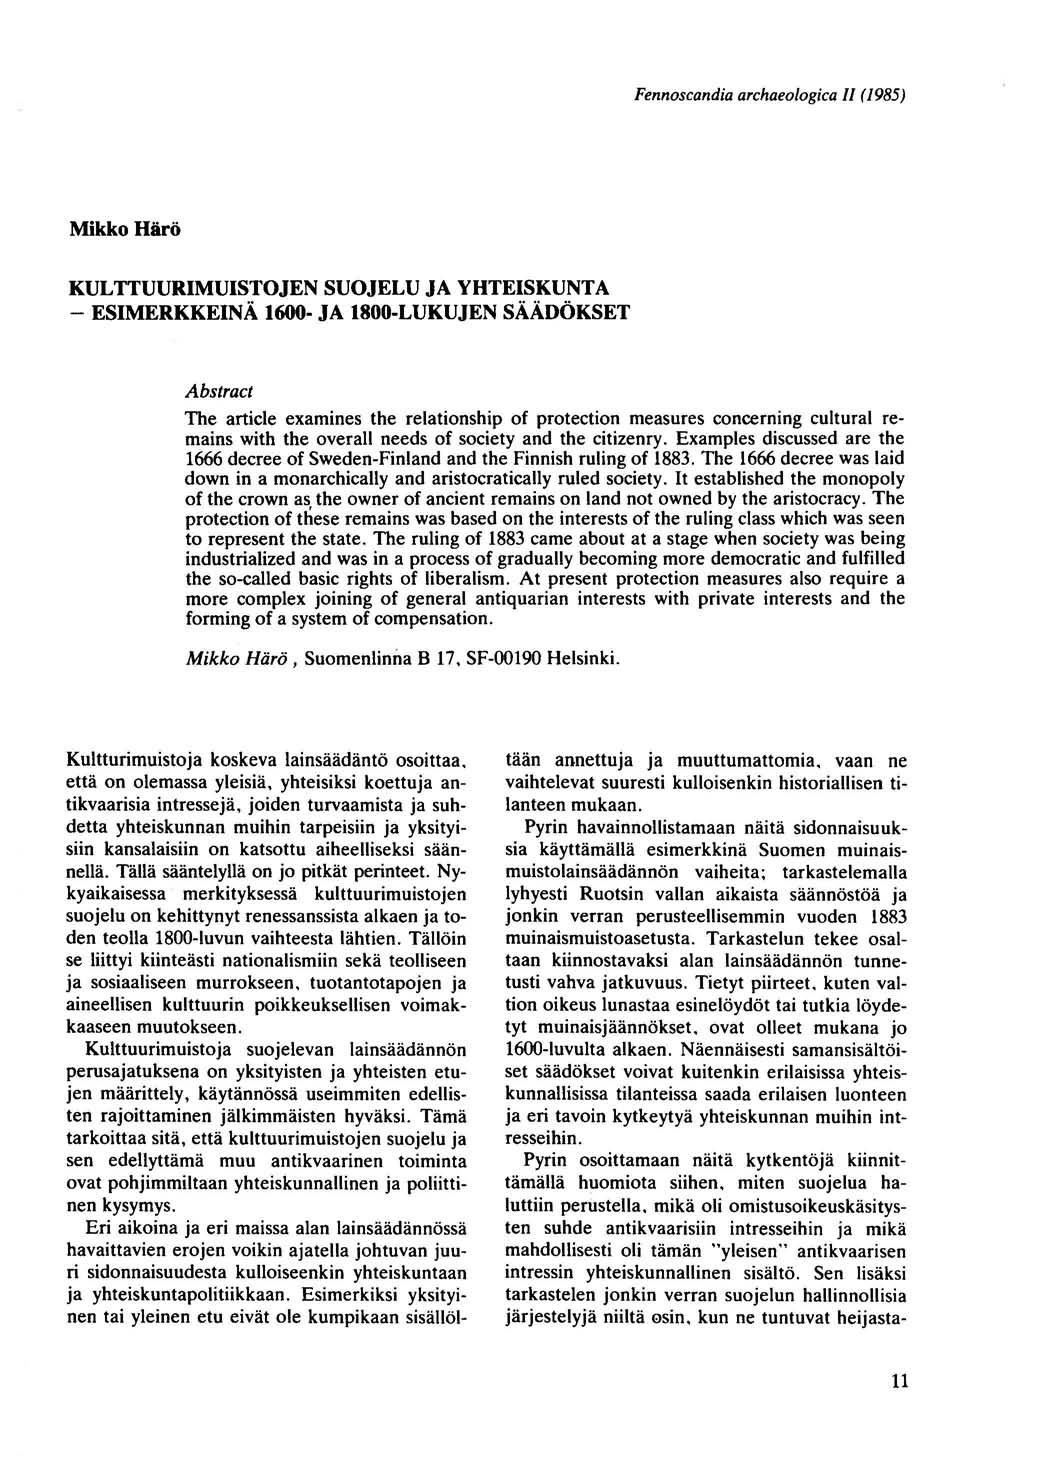 Fennoscandia archae%gica 1/ (1985) Mikko Hiro KULTTUURIMUISTOJEN SUOJELU JA YHTEISKUNT A - ESIMERKKEINA 1600- JA 1800-LUKUJEN saanokset Abstract The article examines the relationship of protection